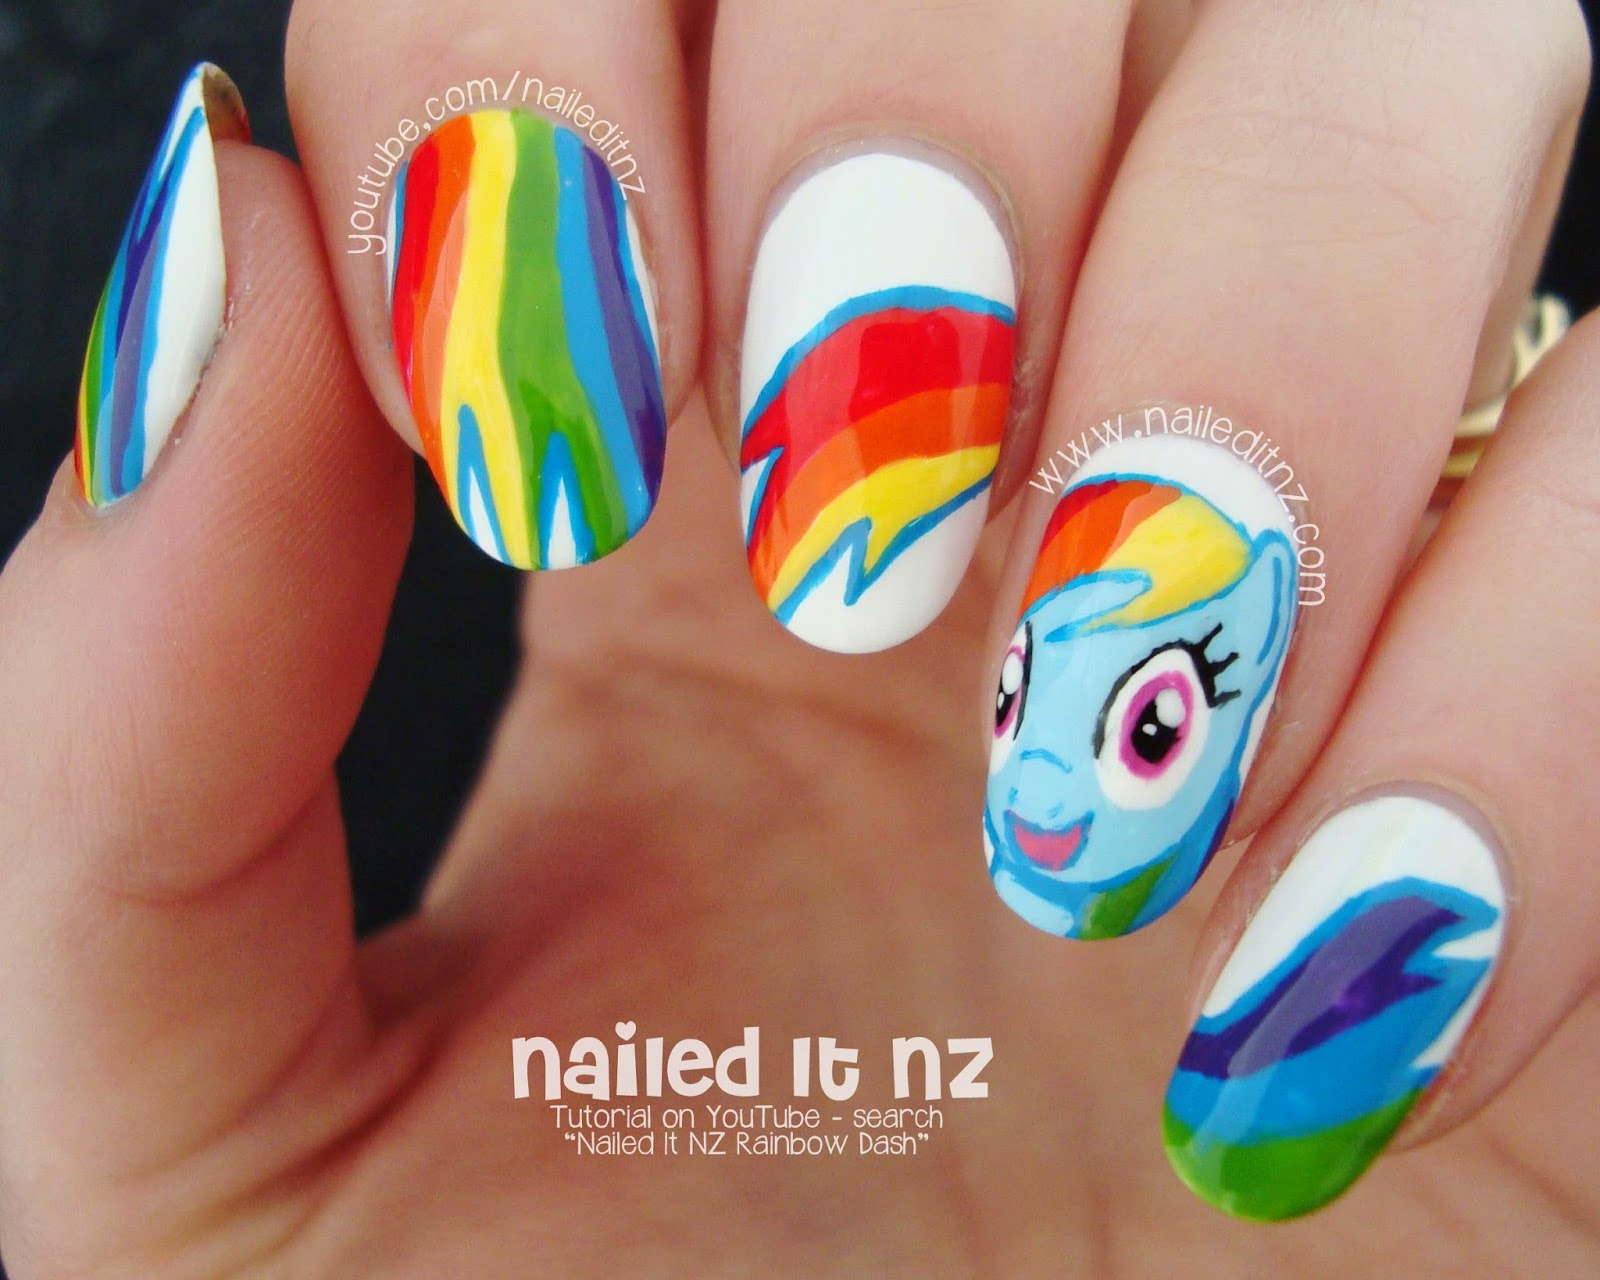 My Little Pony Nail Designs | www.pixshark.com - Images ...